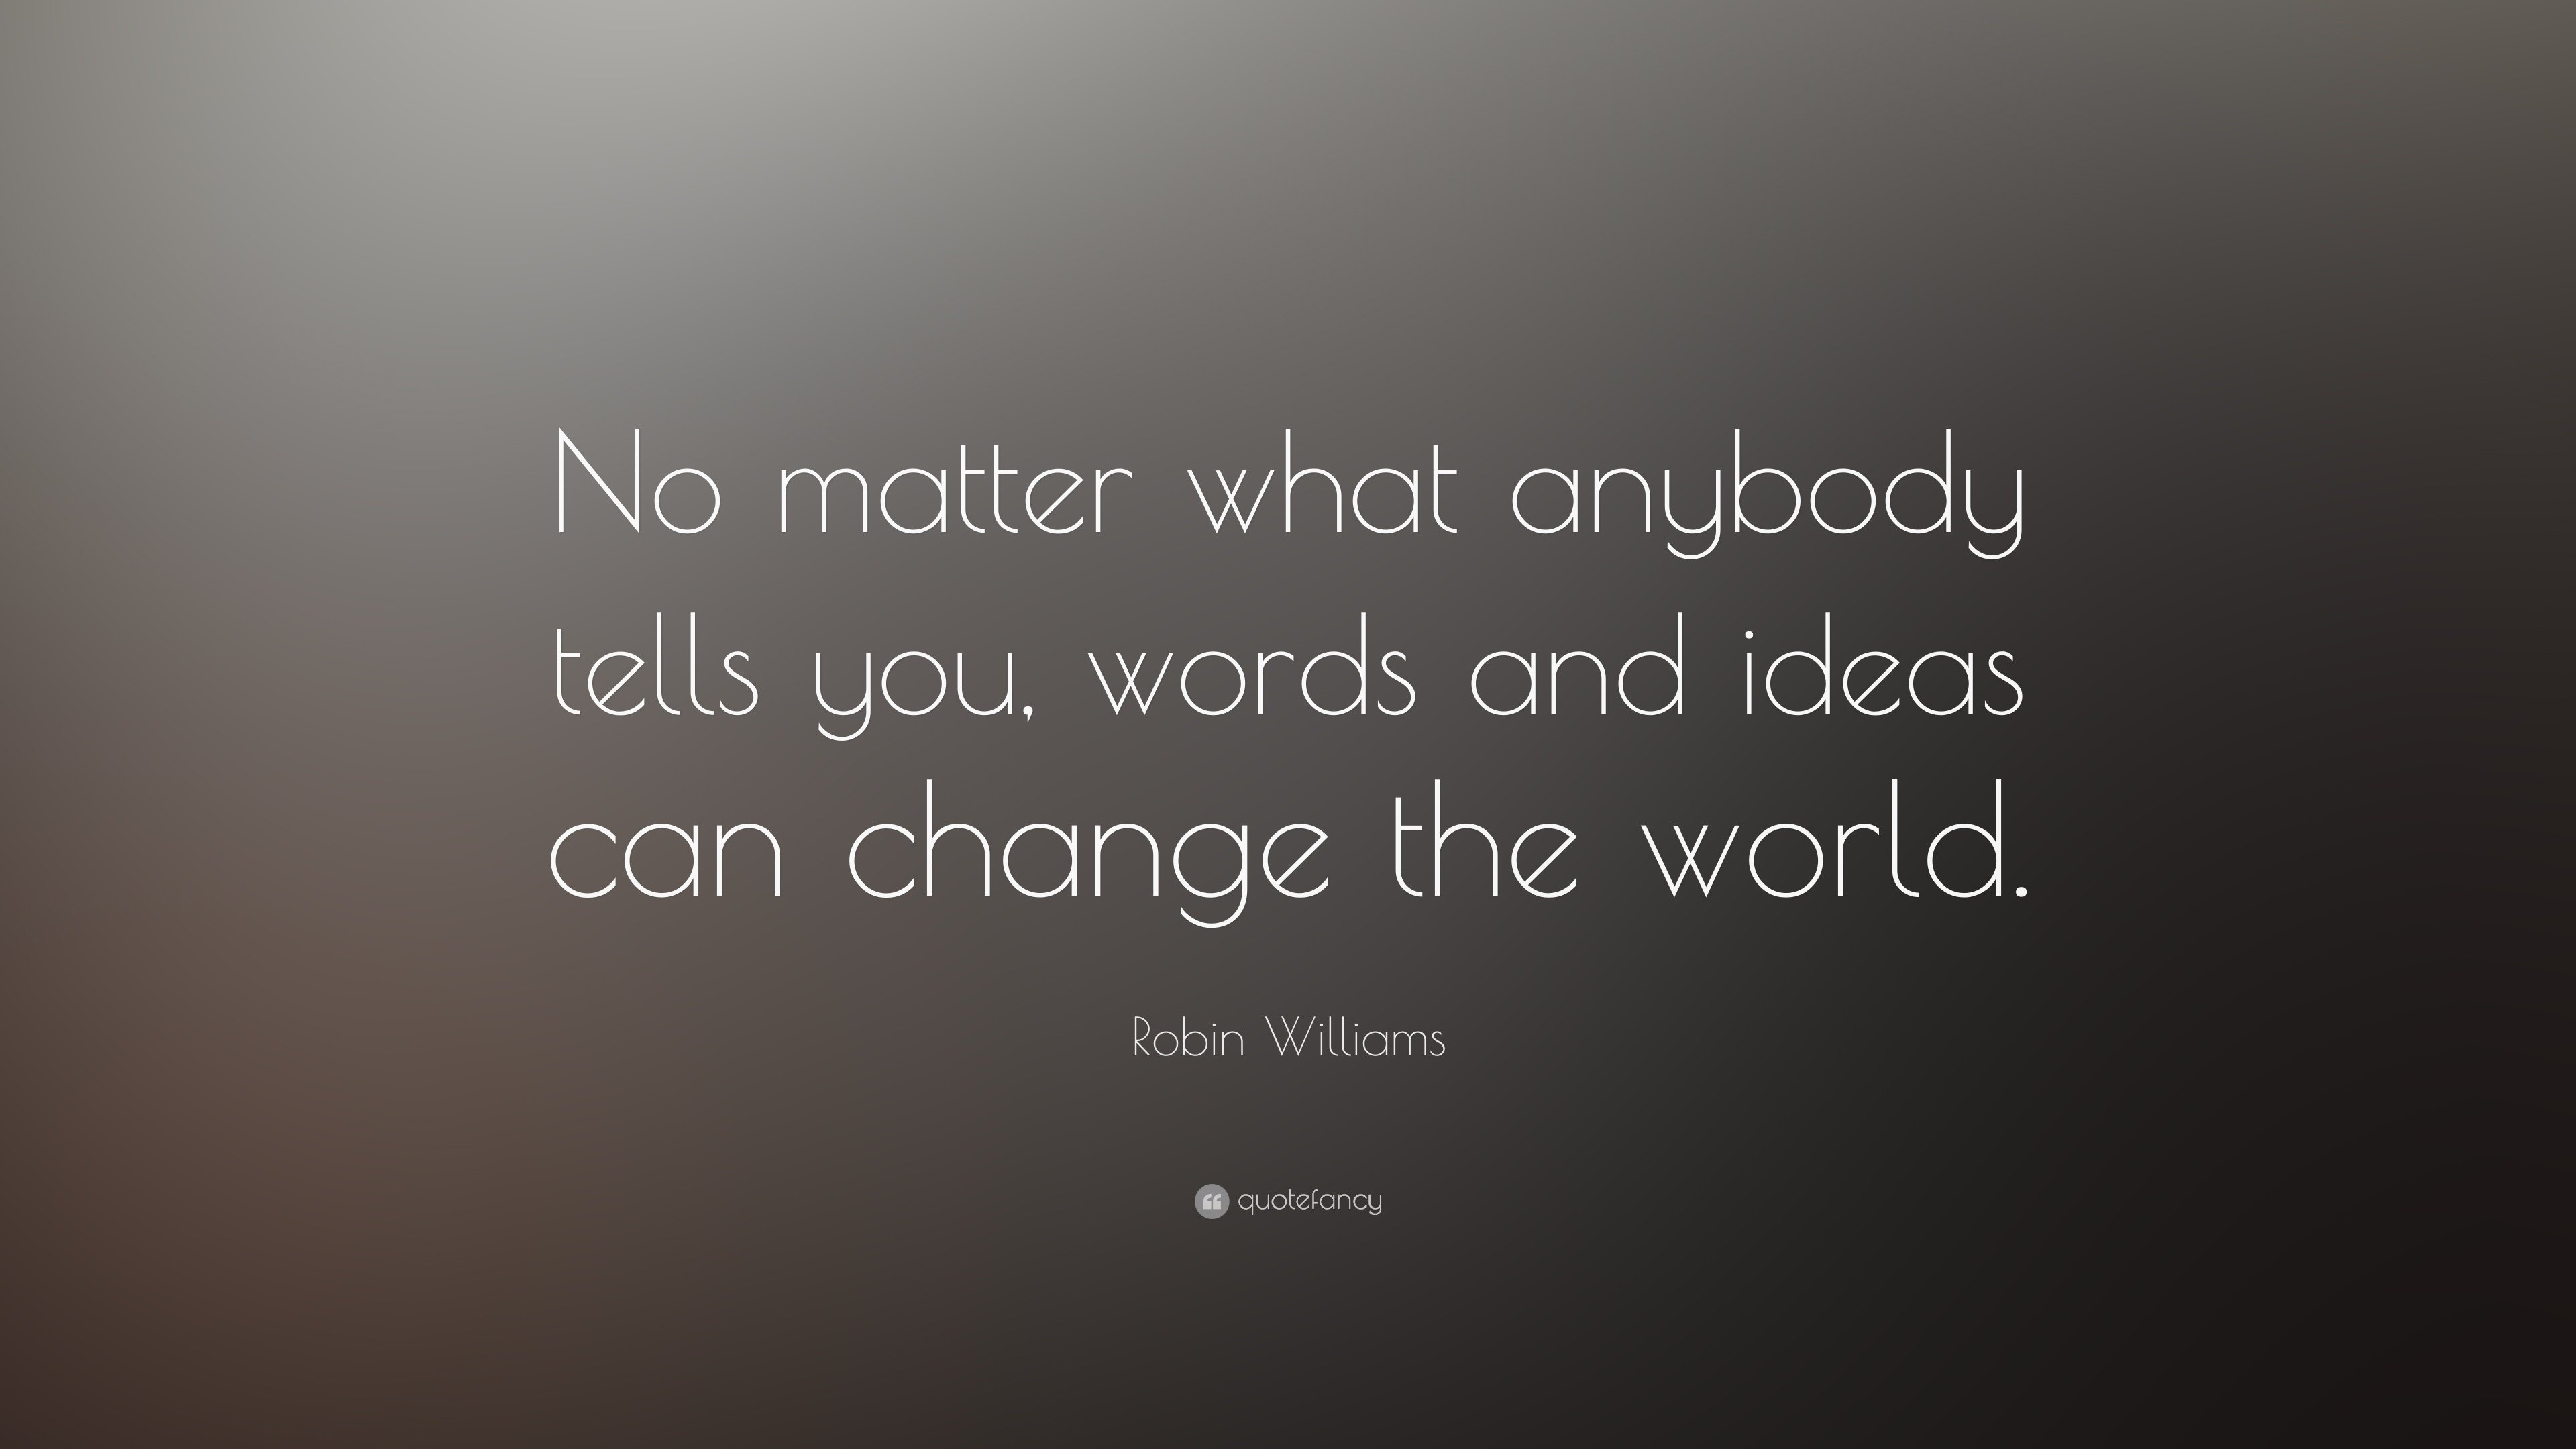 10 Lovely Words And Ideas Can Change The World robin williams quote no matter what anybody tells you words and 3 2021